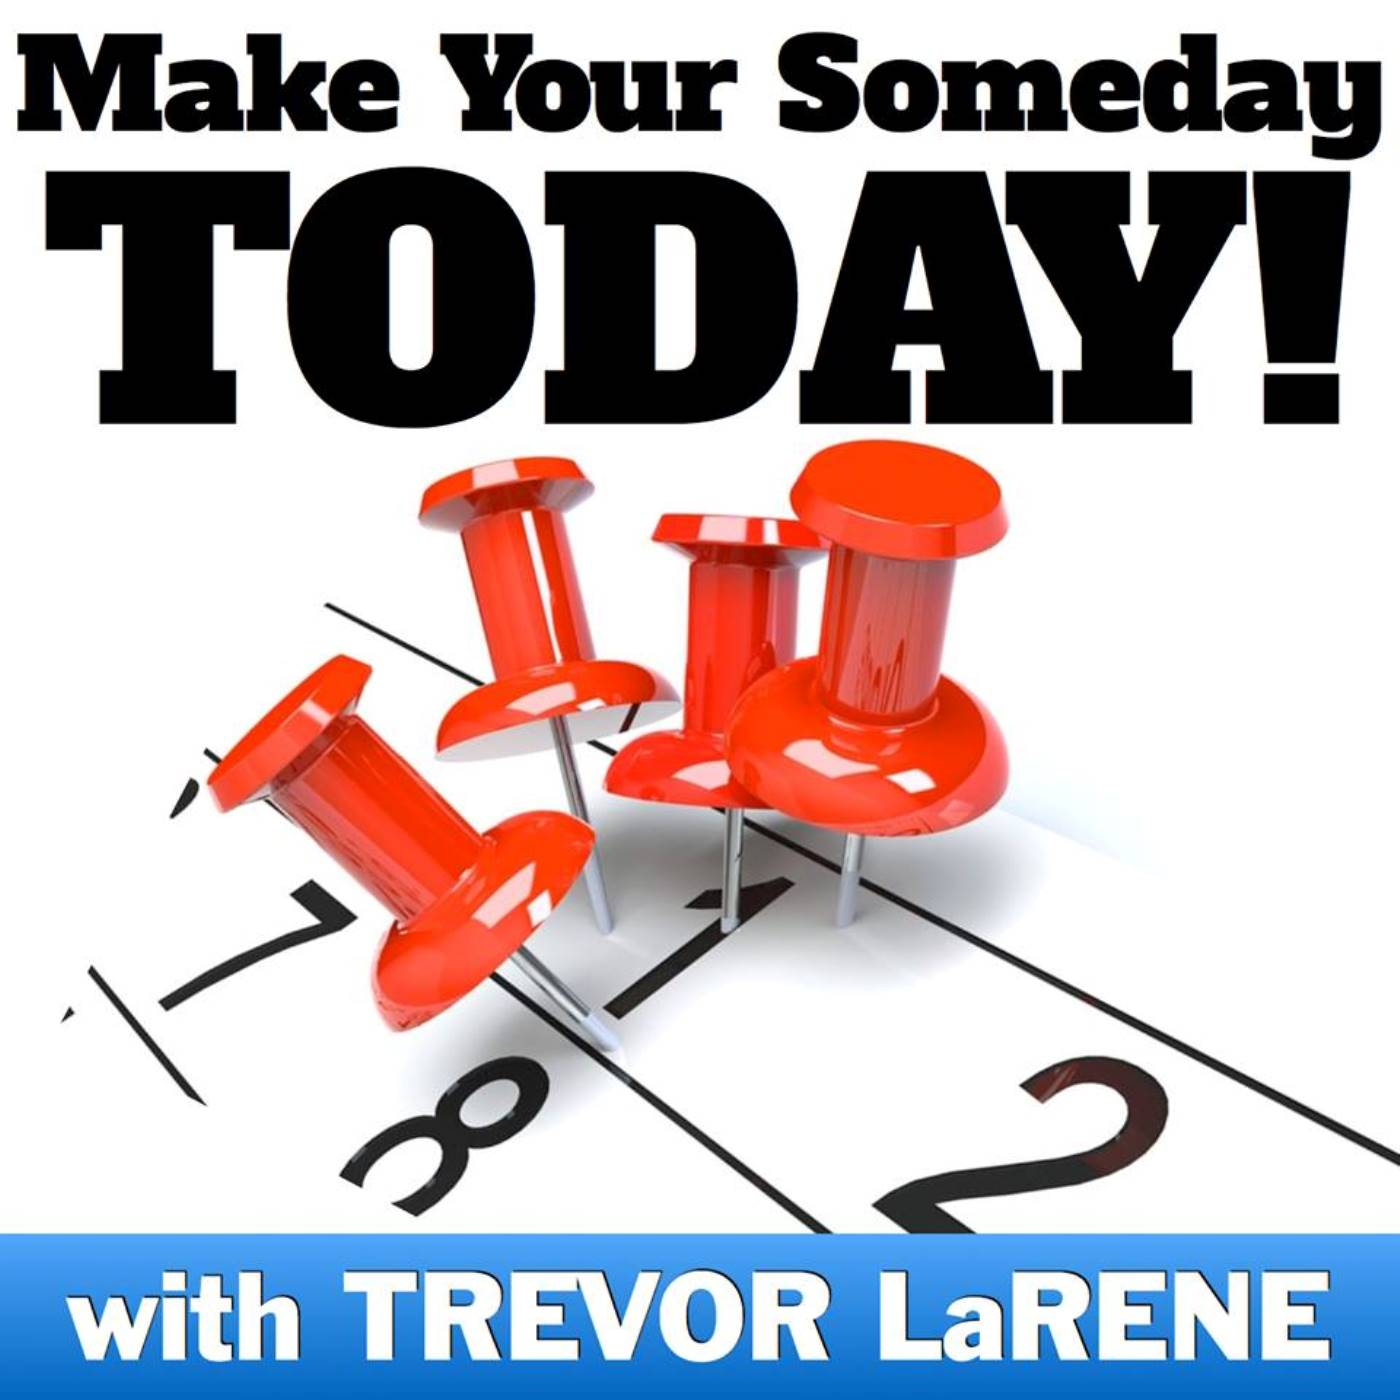 Make Your Someday Today Podcast : Reach Your Goal Weight and Become the Person You Deserve